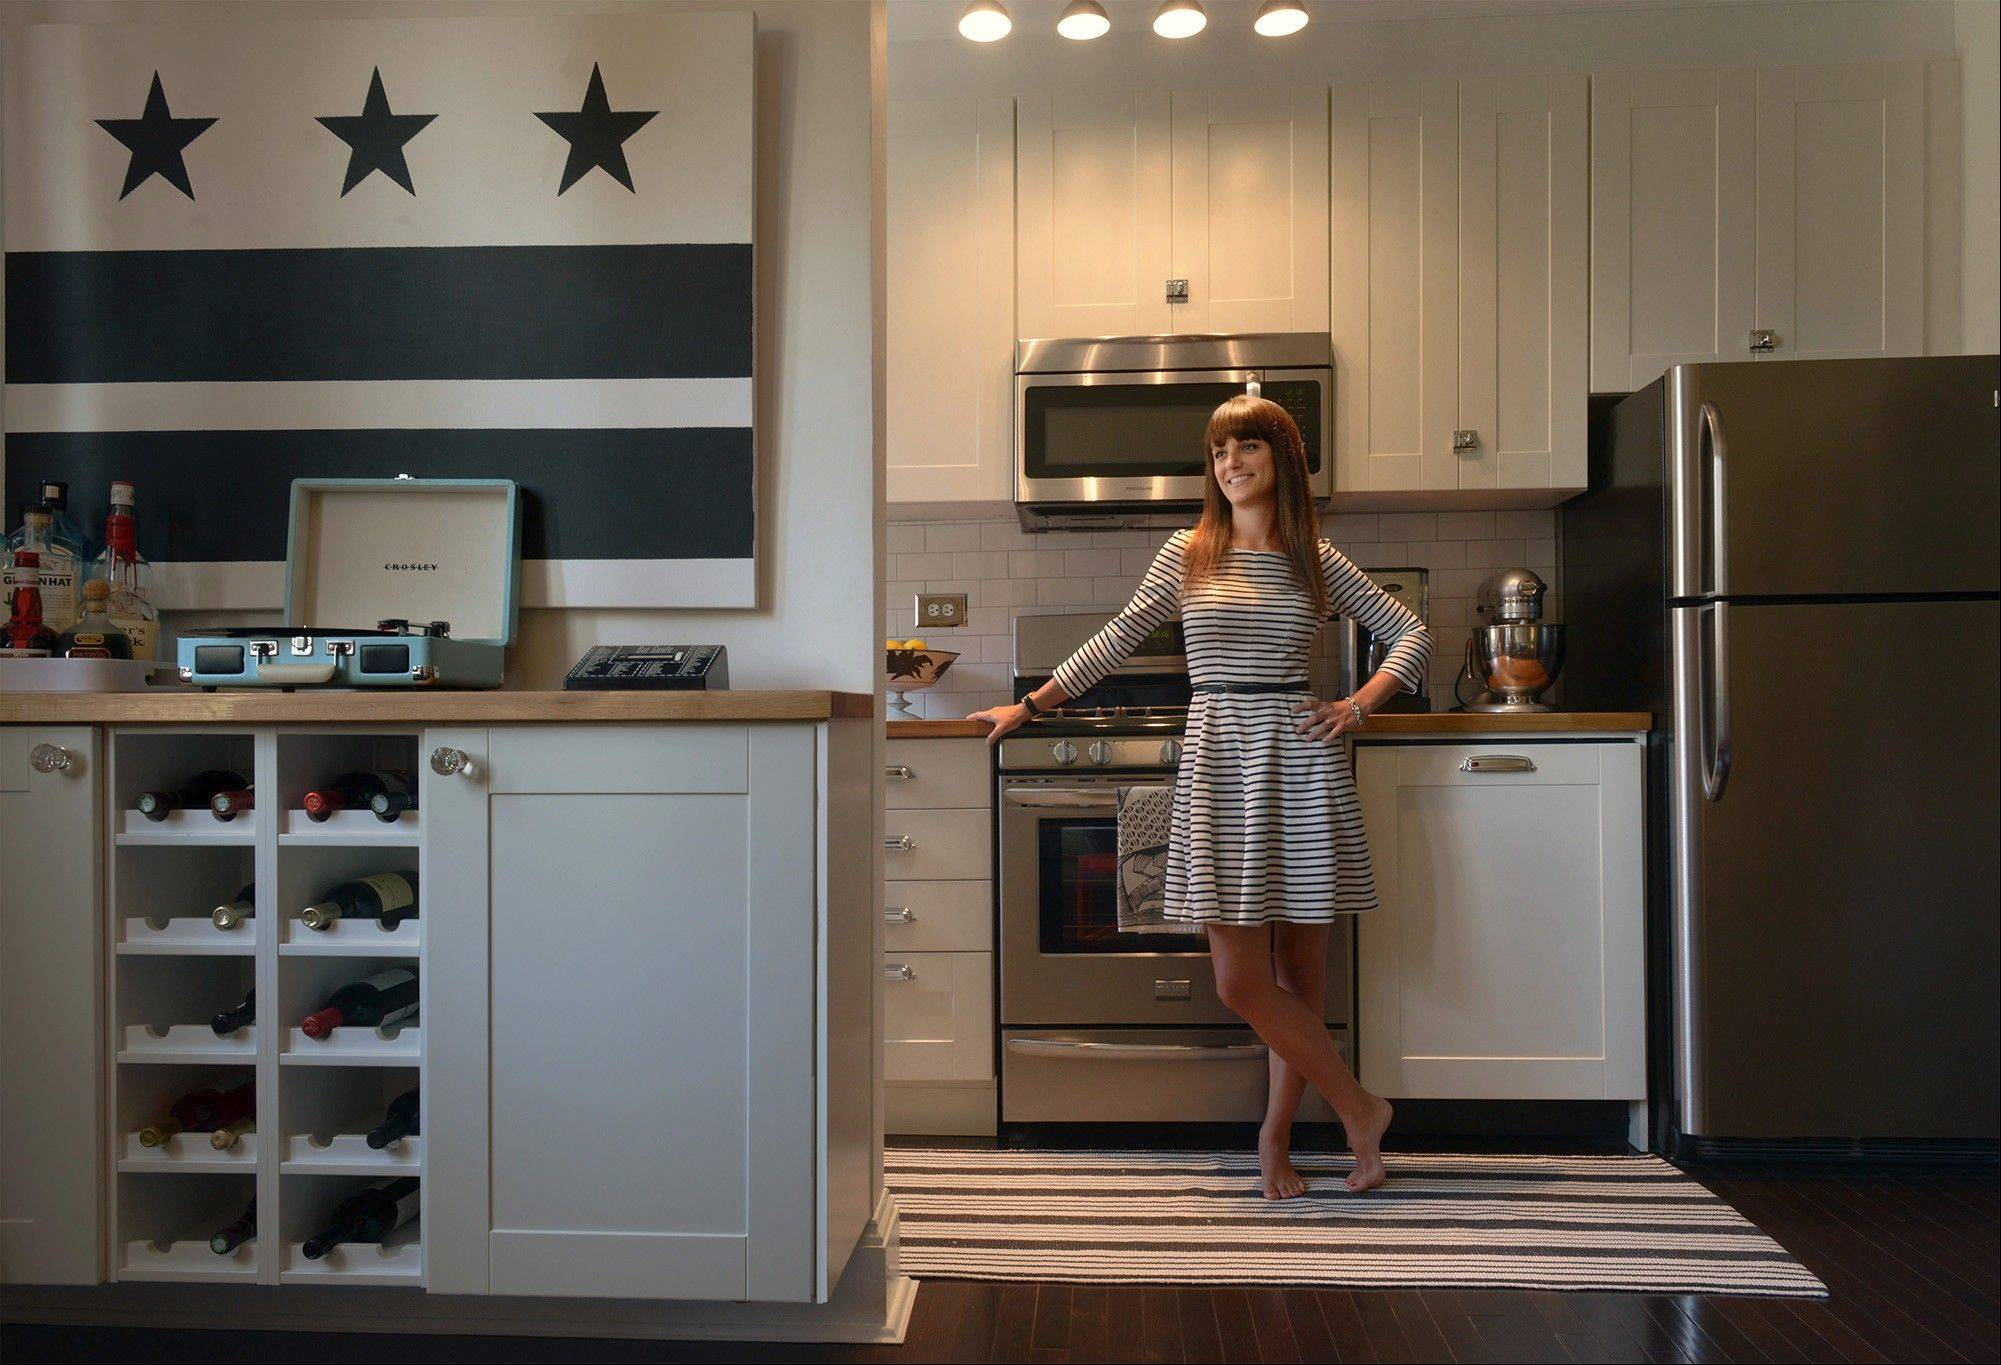 Kiera Kushlan in the renovated kitchen of the 750-square-foot co-op she shares with her husband Michael, who painted the black-and-white D.C. flag; the flag has been such a conversation piece itís now selling on Etsy.